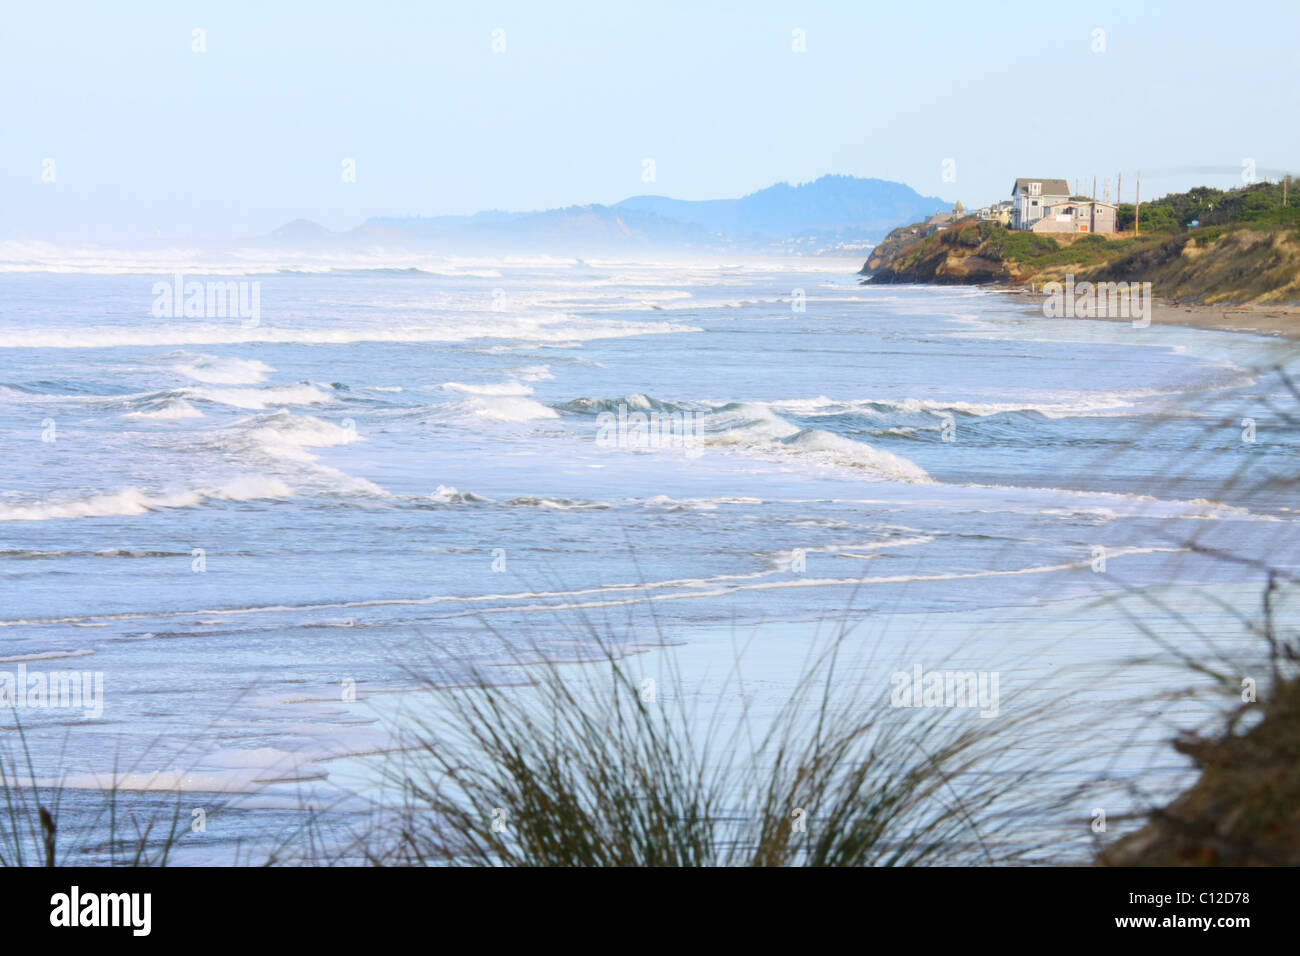 40,150.05153a Parallel seascape view of ocean waves surf beach distant house hills, foreground vegetation beach Stock Photo